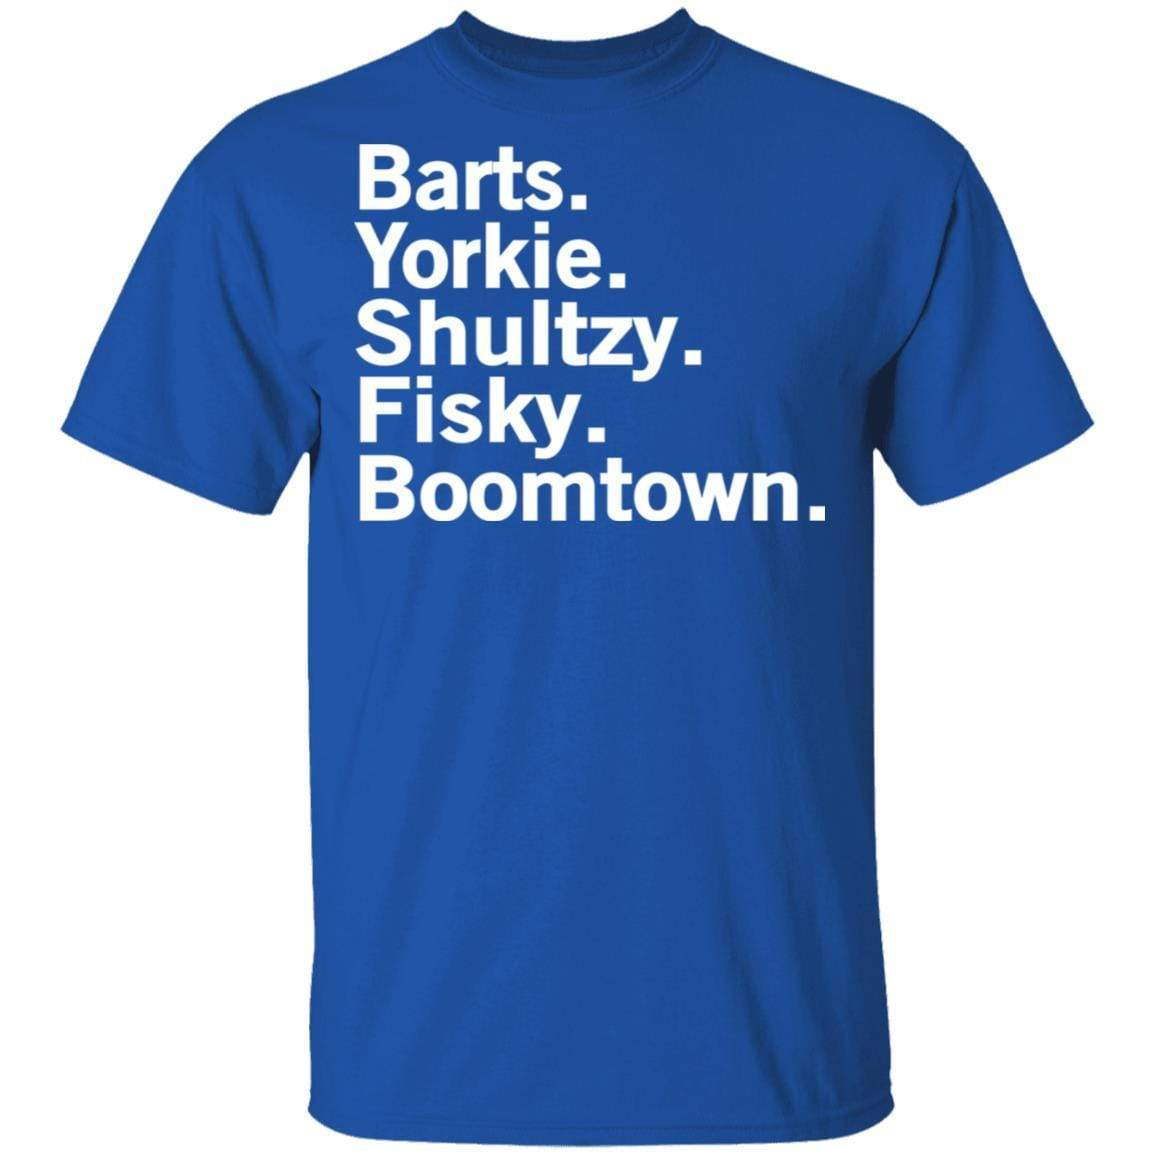 Barts Yorkie Shultzy Fisky Boomtown T-Shirts, Hoodies 1049-9971-86894761-48286 - Tee Ript